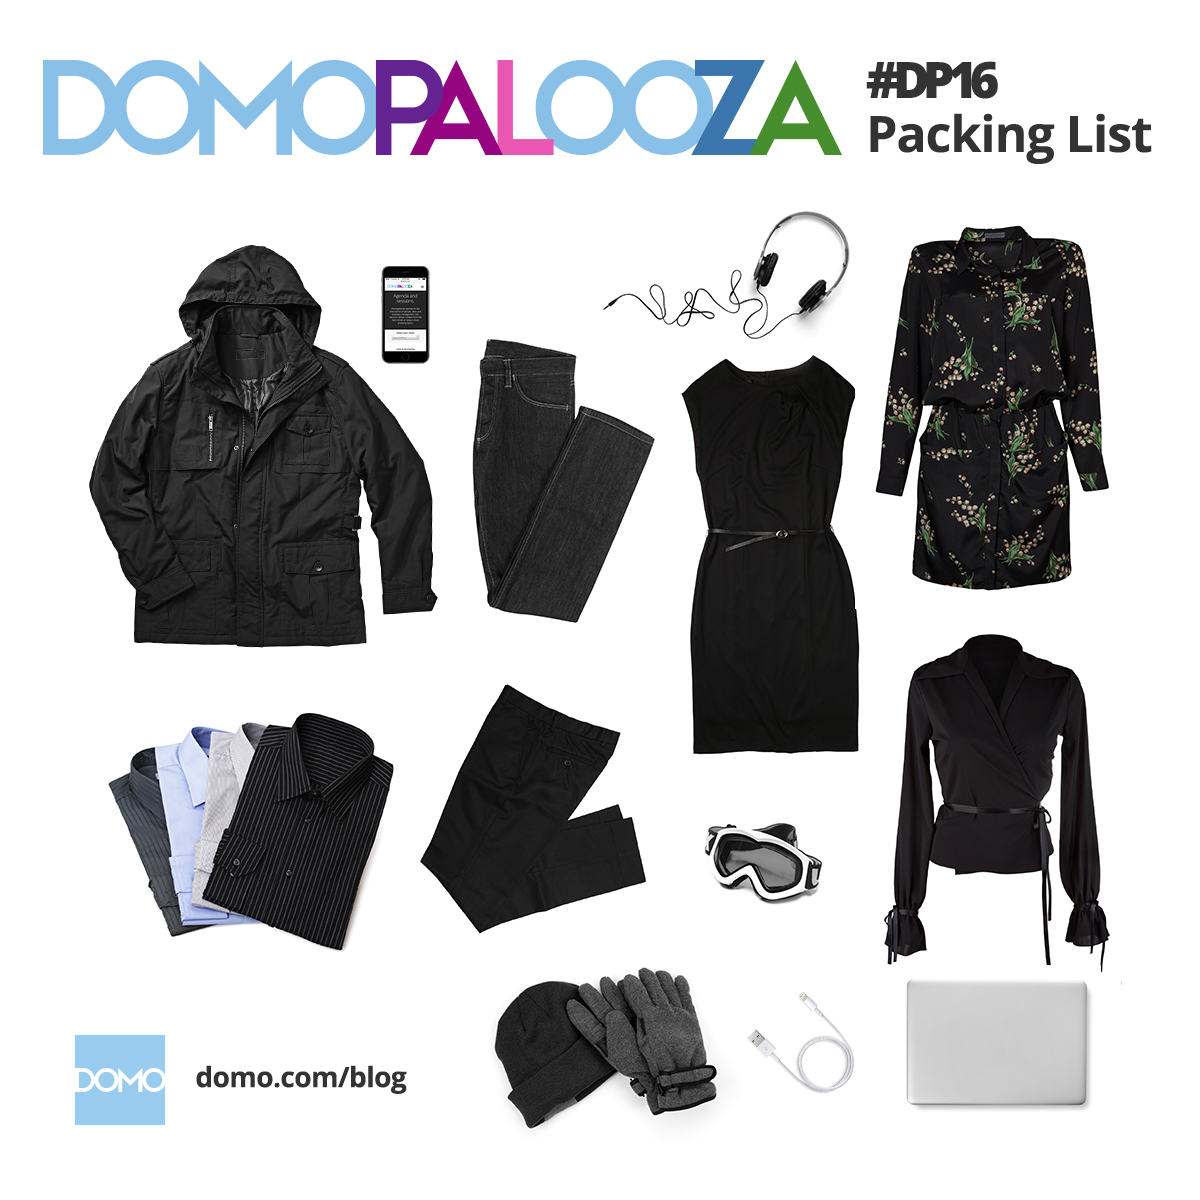 16-blog-dp16-packing-list-1200x1200